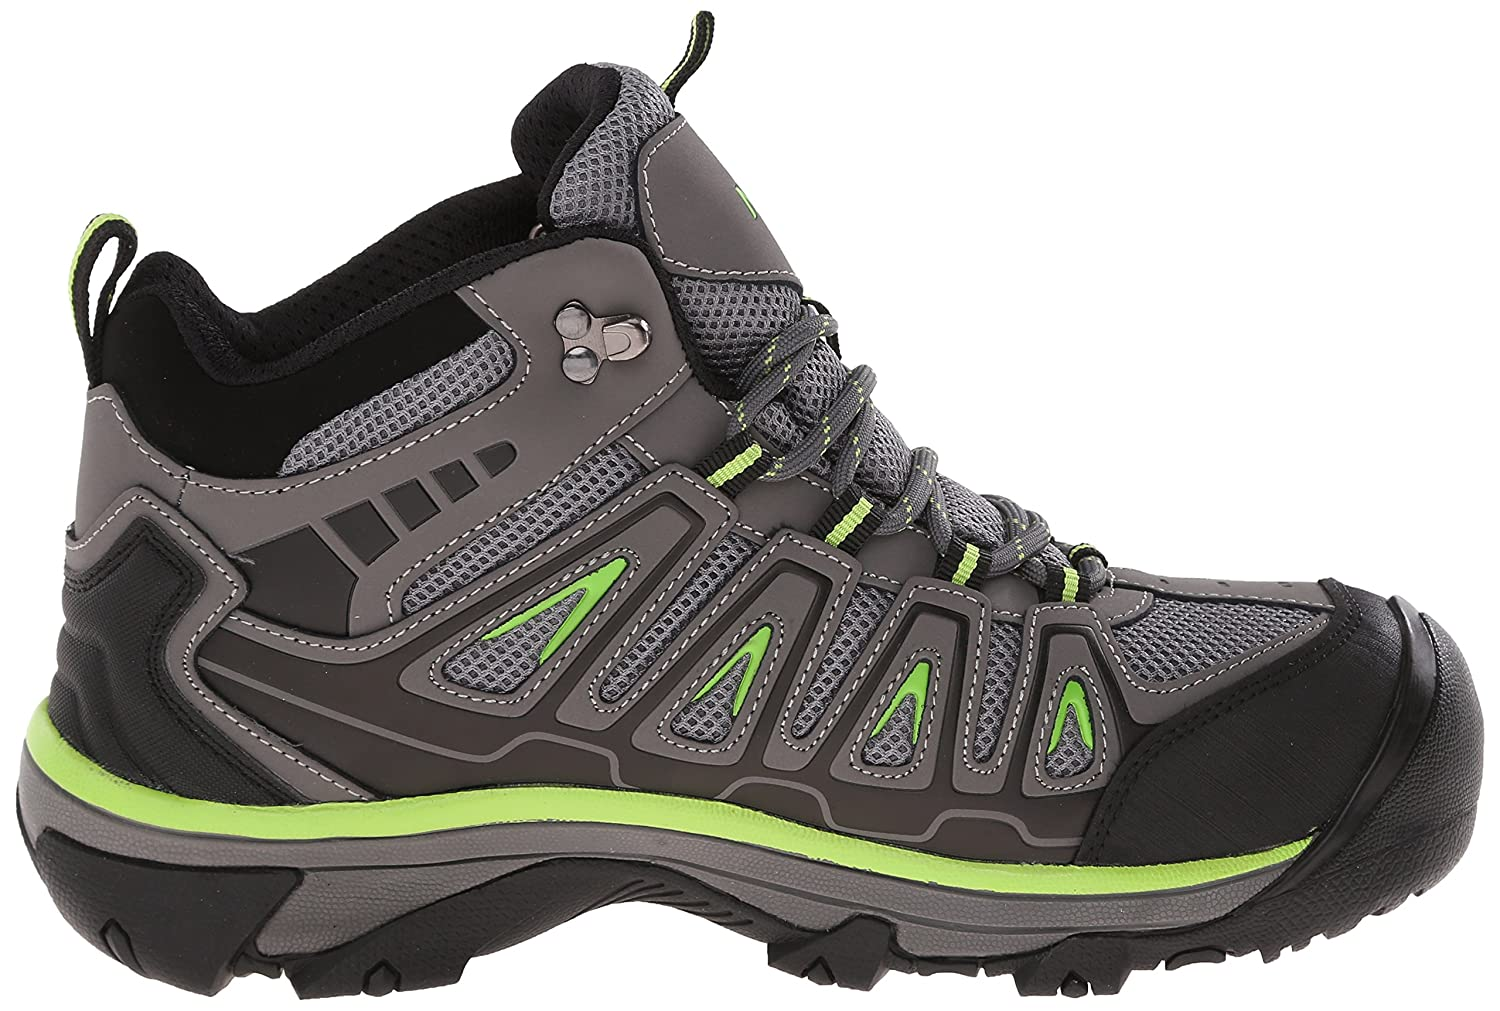 Amazon.com | Nautilus 2202 Light Weight Mid Waterproof Safety Toe EH Hiking Shoe | Boots